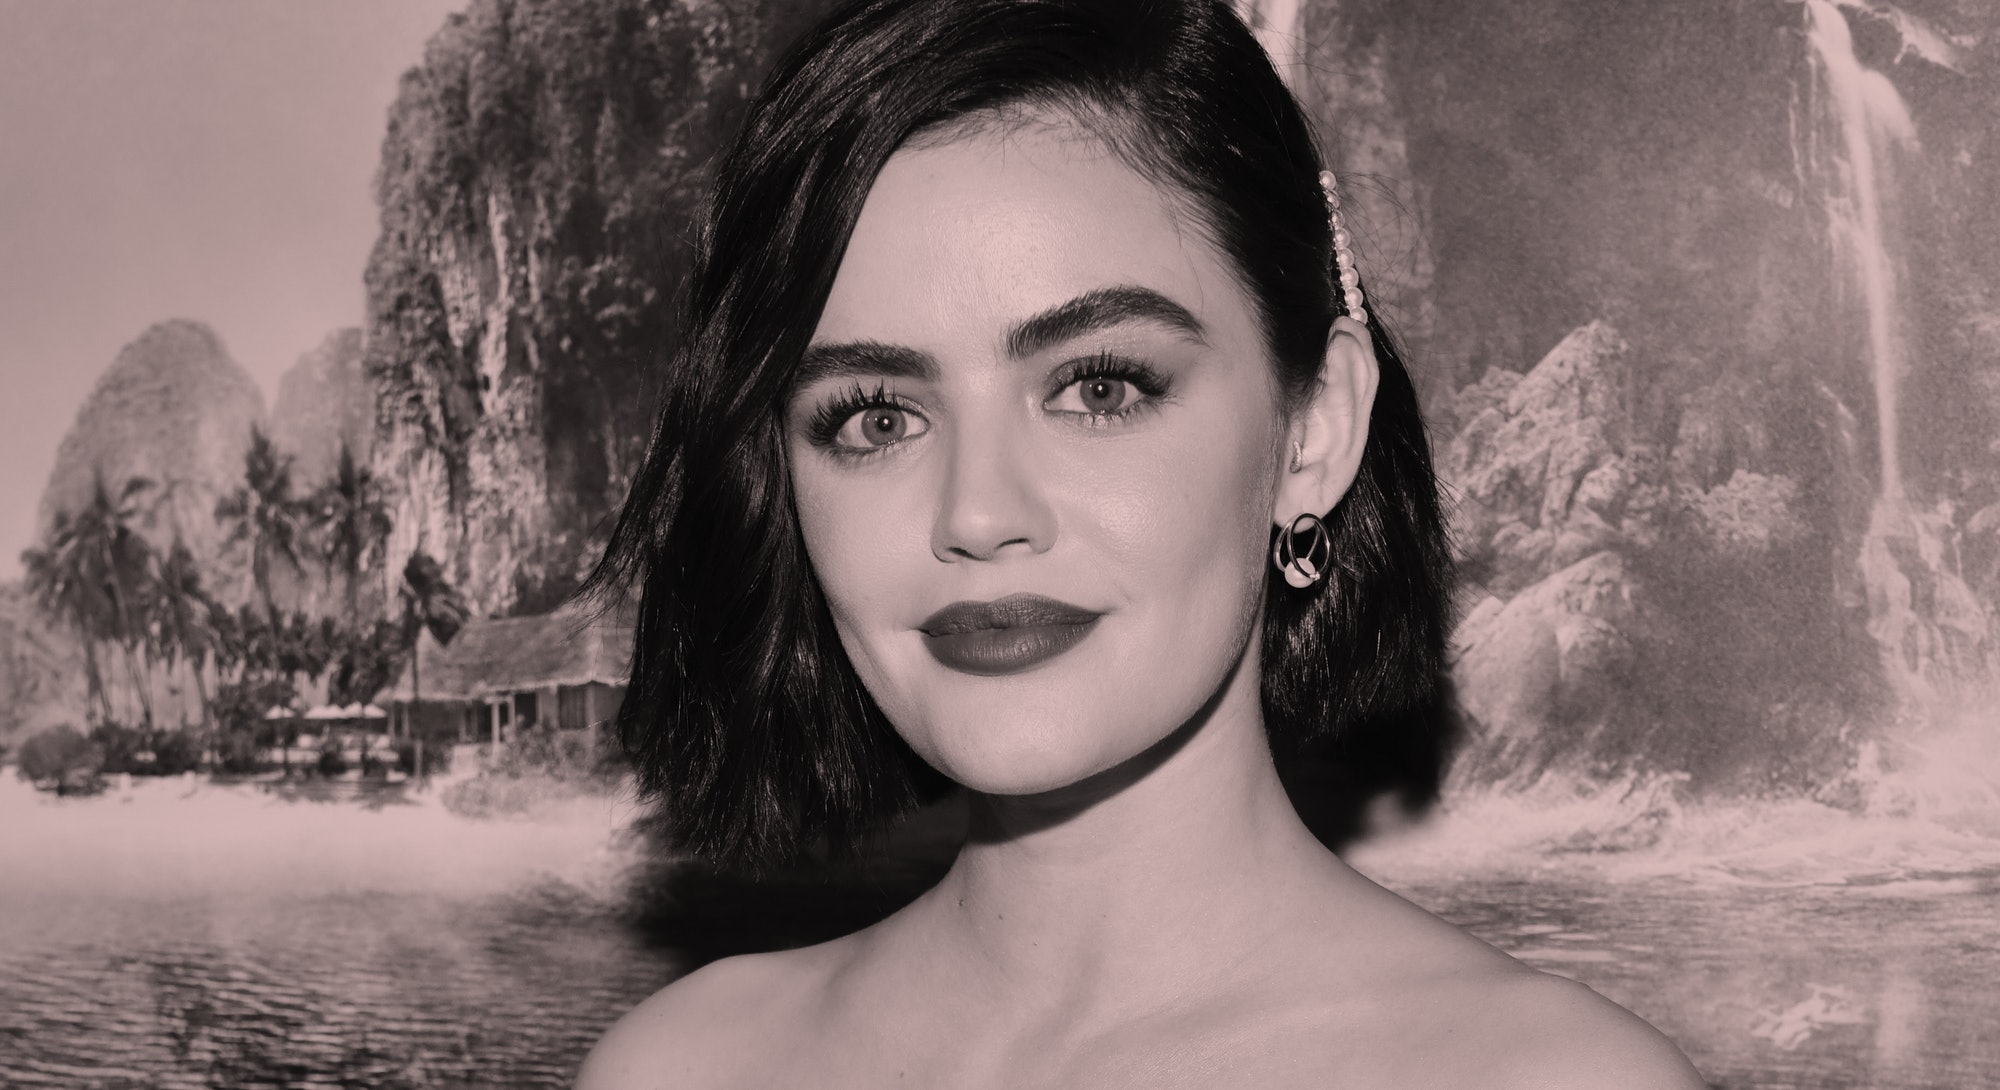 Lucy Hale, wearing pink lipstick, stands against backdrop of fake waterfall